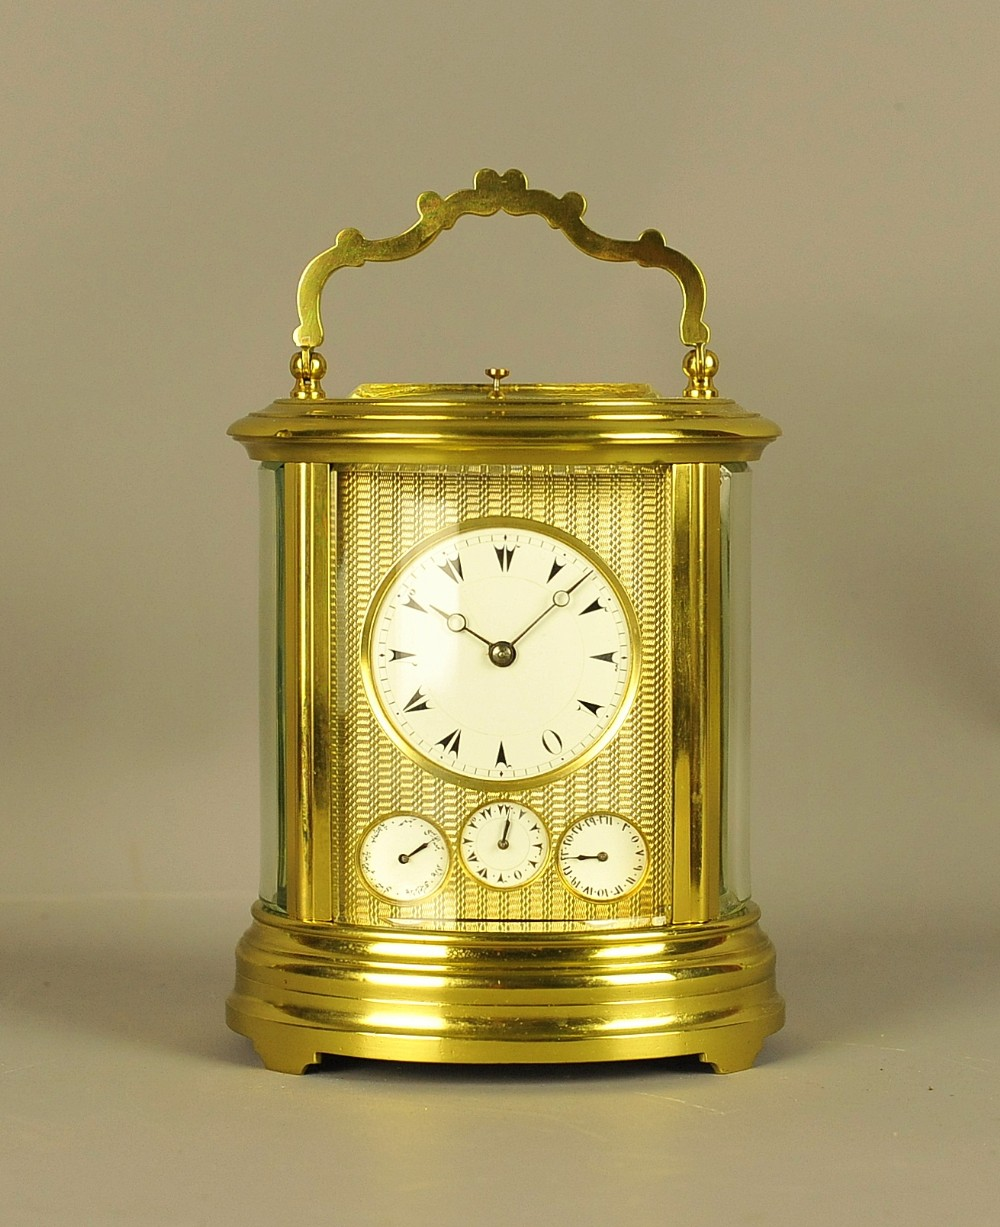 oval repeating carriage clock with calendar and alarm